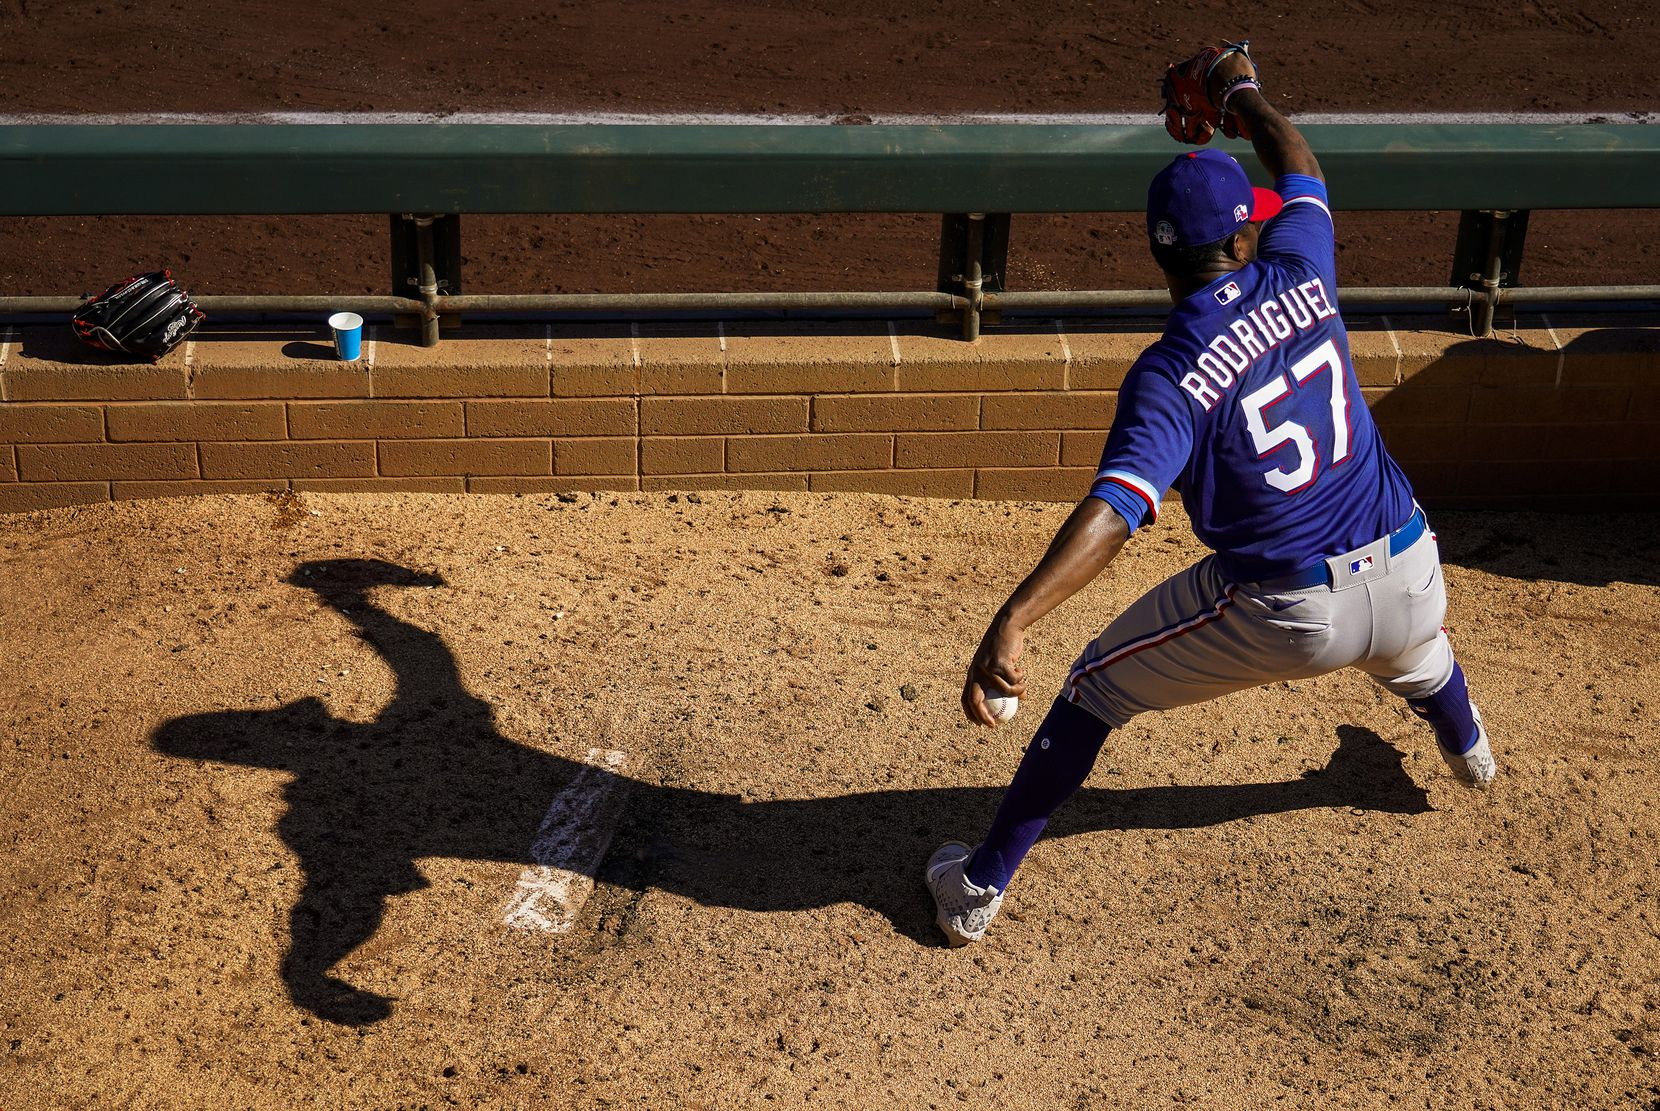 Texas Rangers pitcher Joely Rodriguez warms up in the bullpen during the sixth inning of a spring training game against the Colorado Rockies at Salt River Fields at Talking Stick on Wednesday, Feb. 26, 2020, in Scottsdale, Ariz.